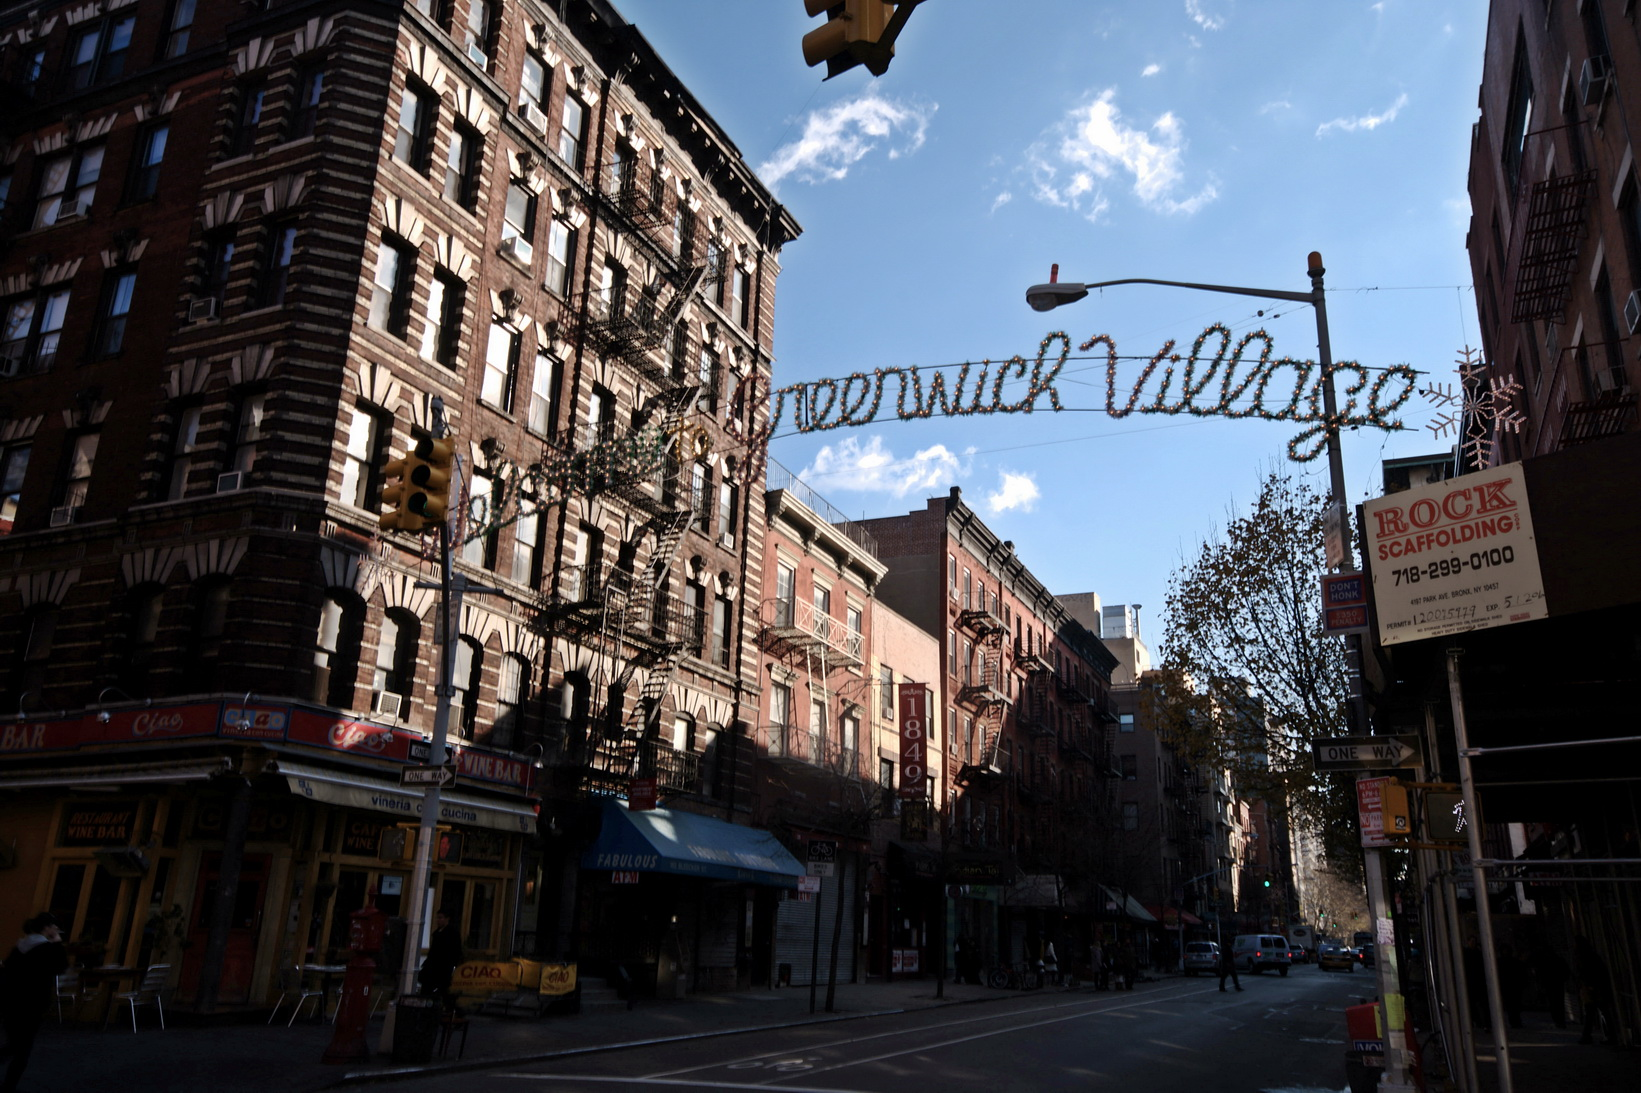 Migliori hotel del greenwich village di new york for Dove alloggiare new york